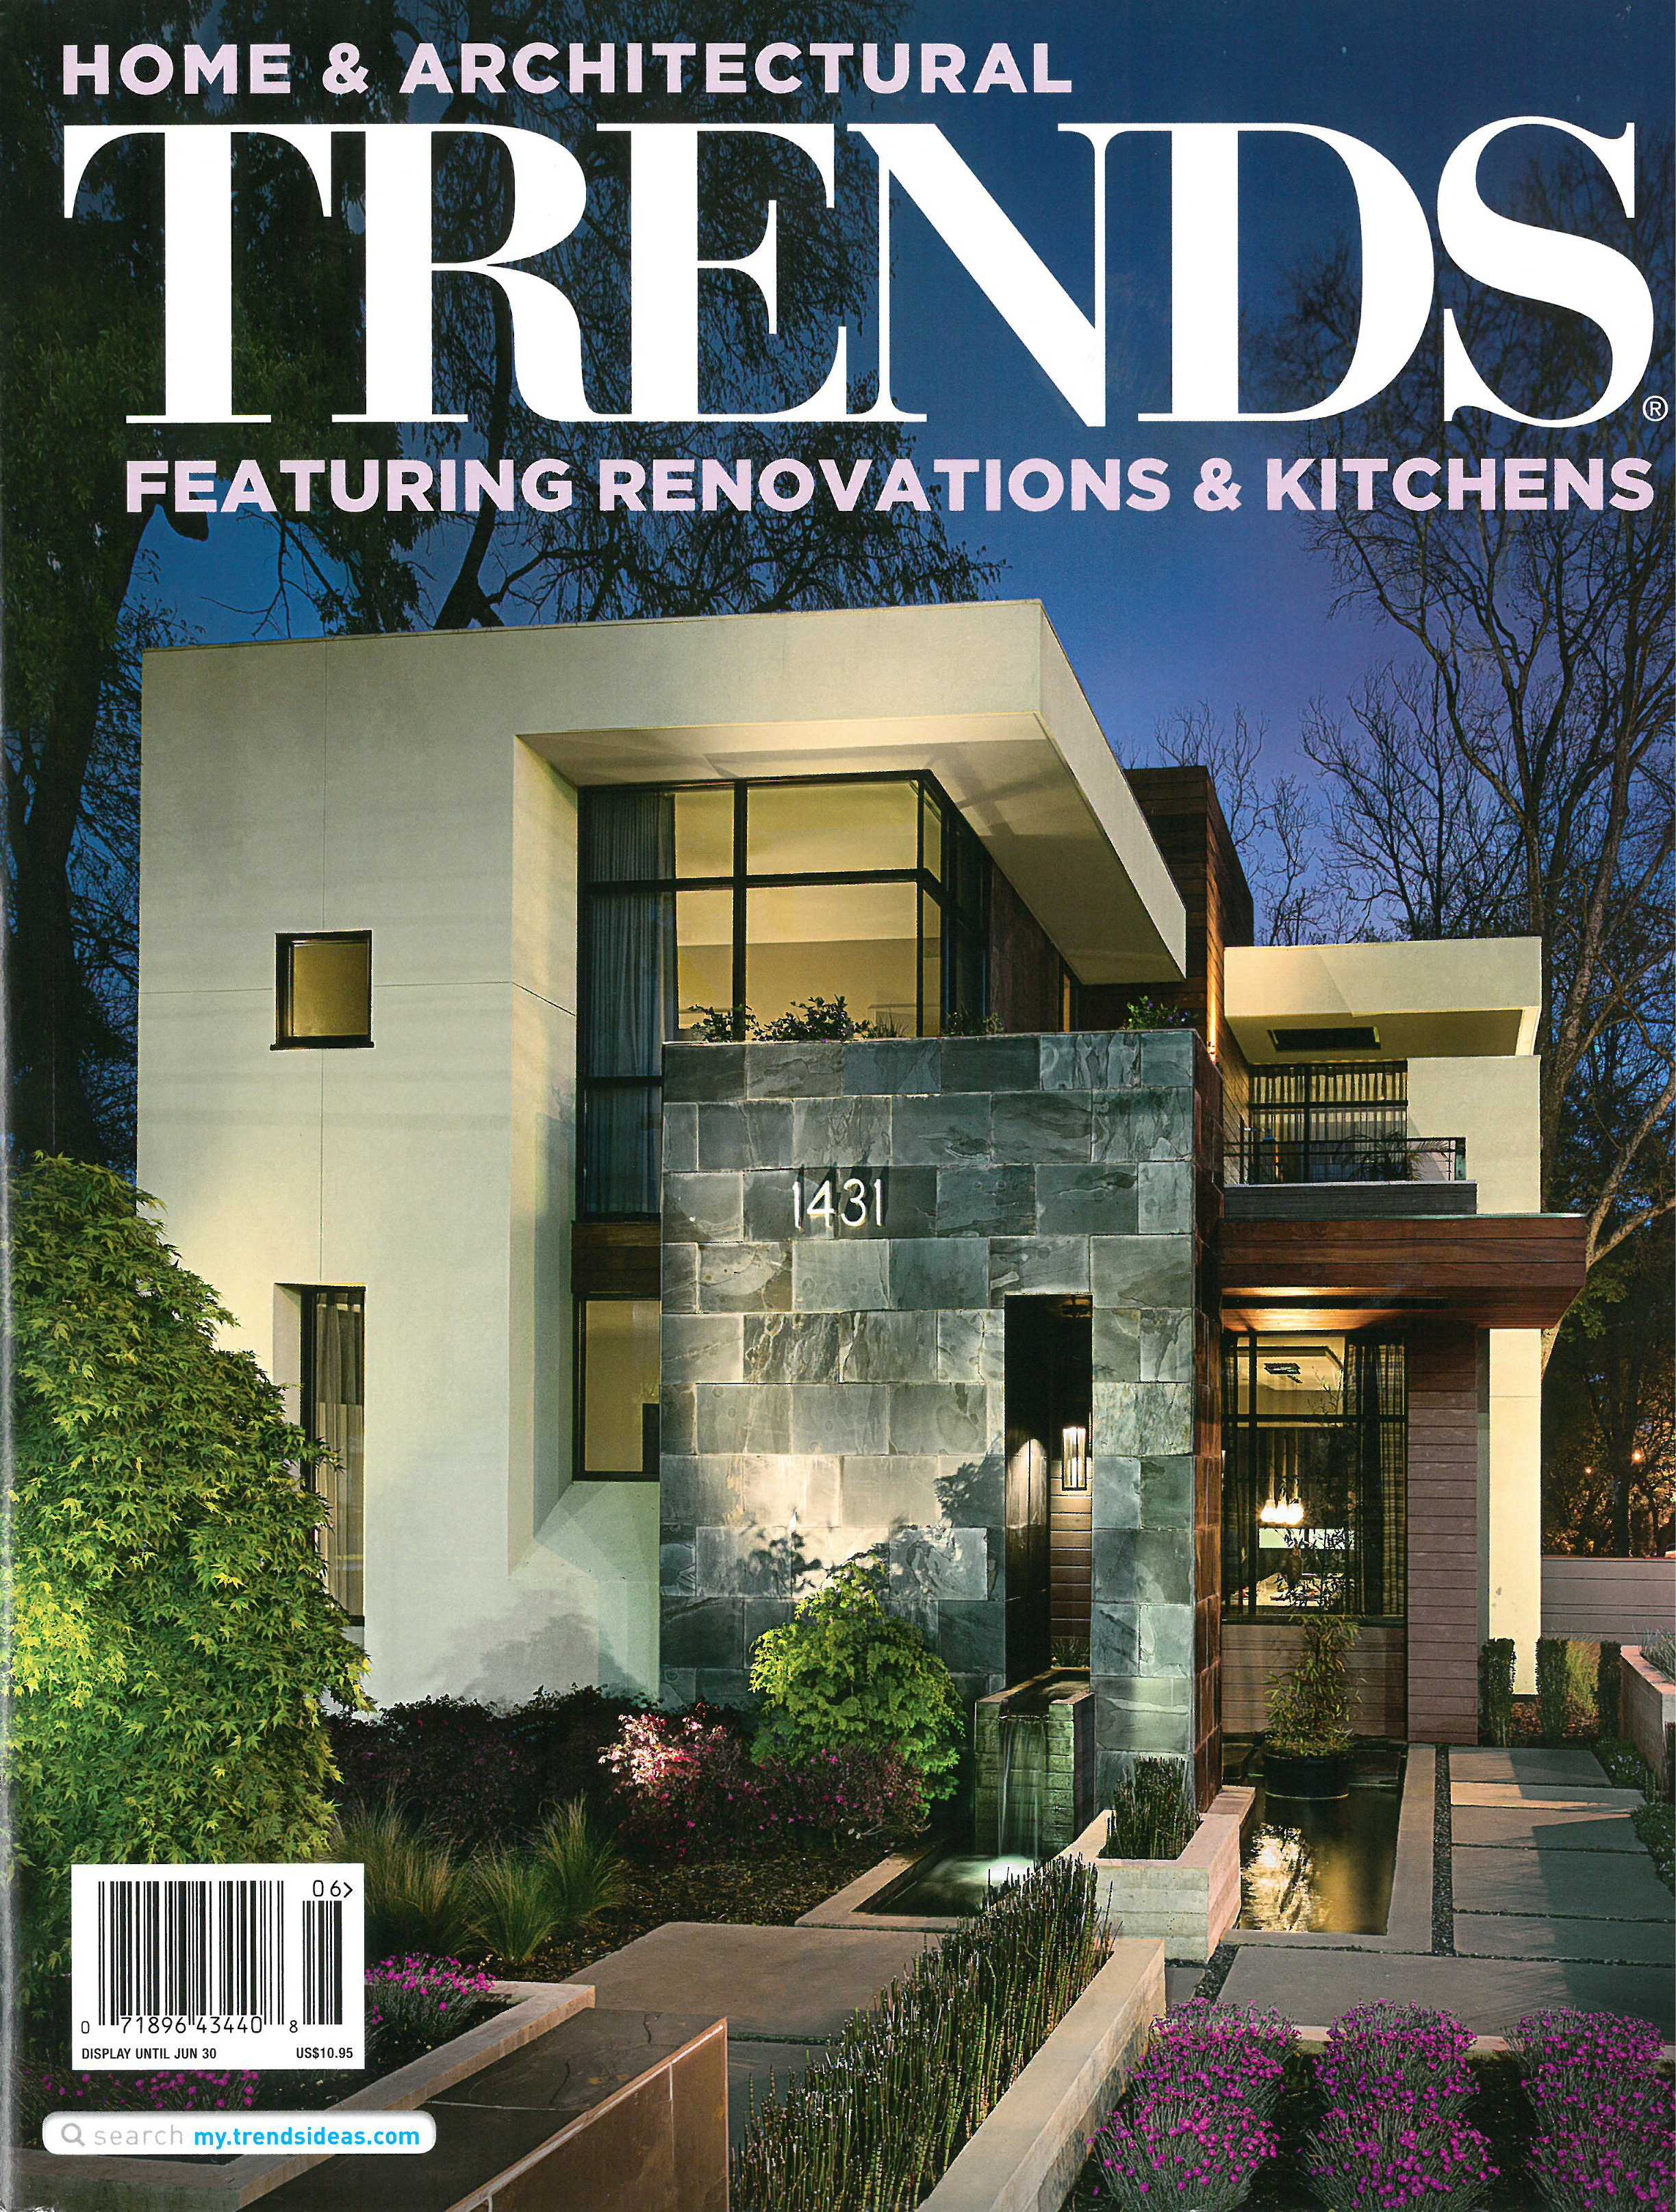 home architectural trends cheng design sustainable emotional